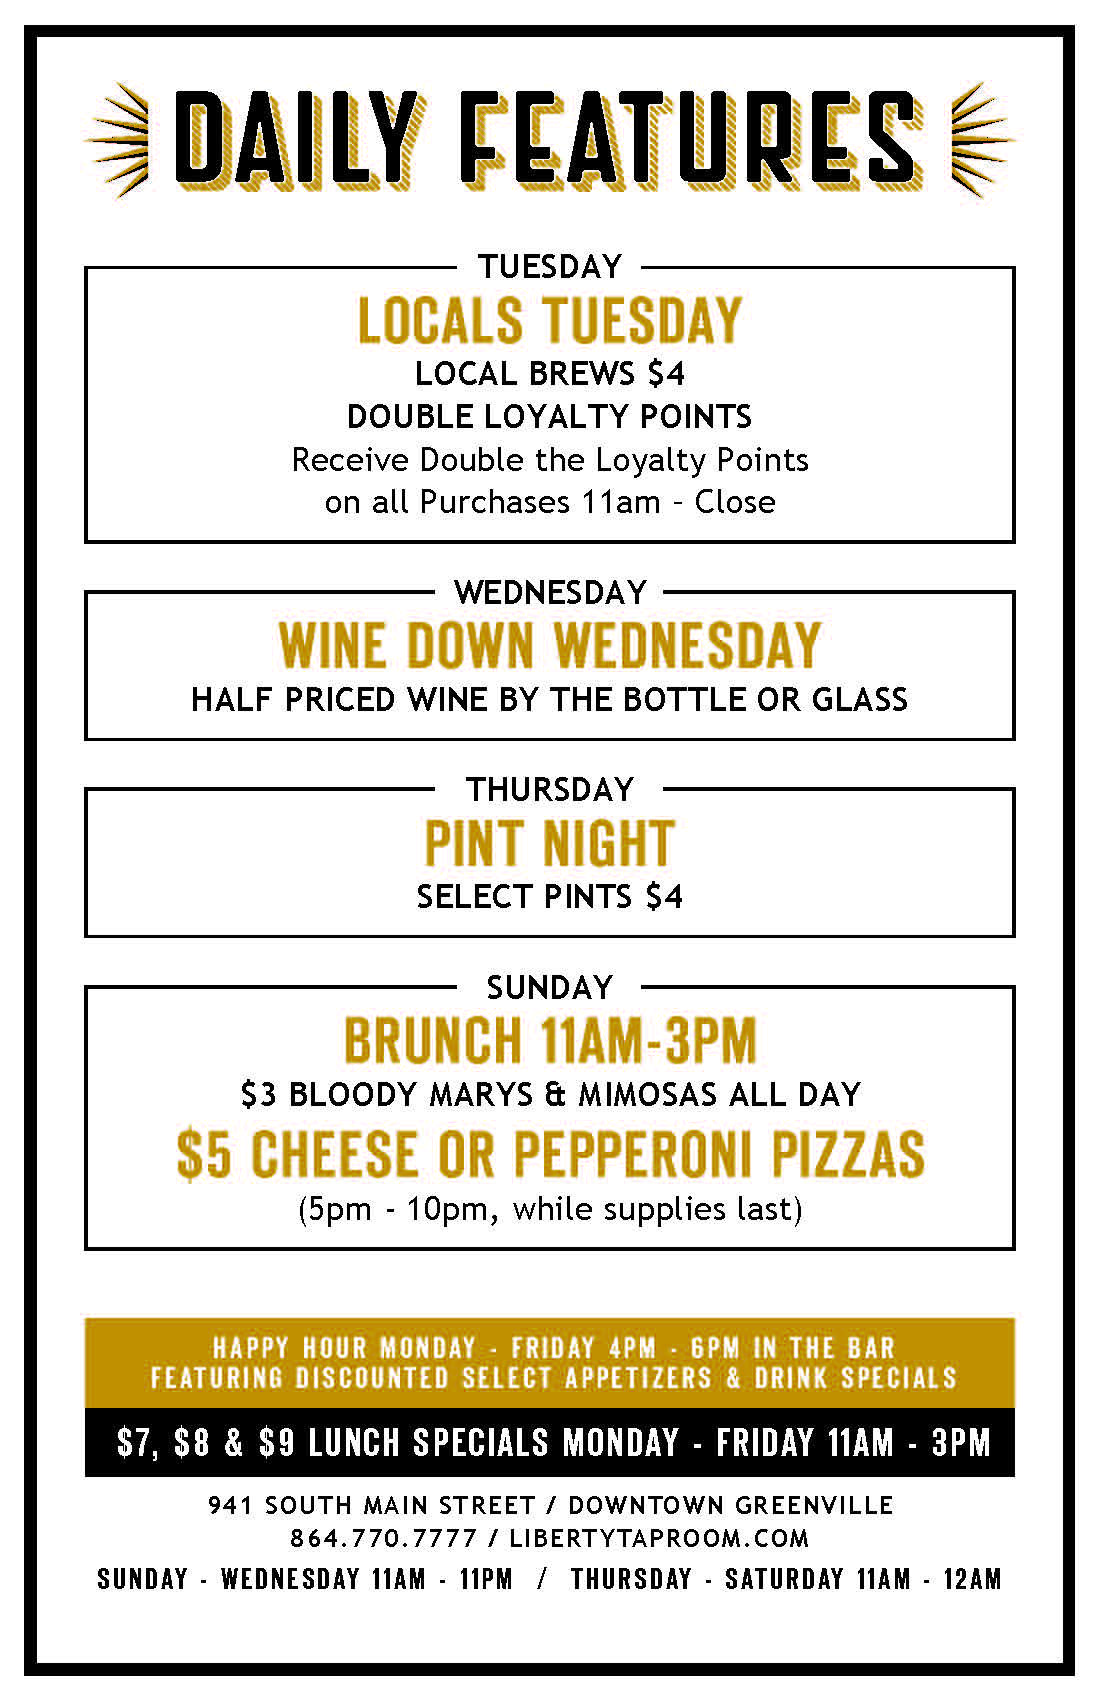 (200) Daily Specials Greenville 5.5x8.5 MAY 2017.jpg